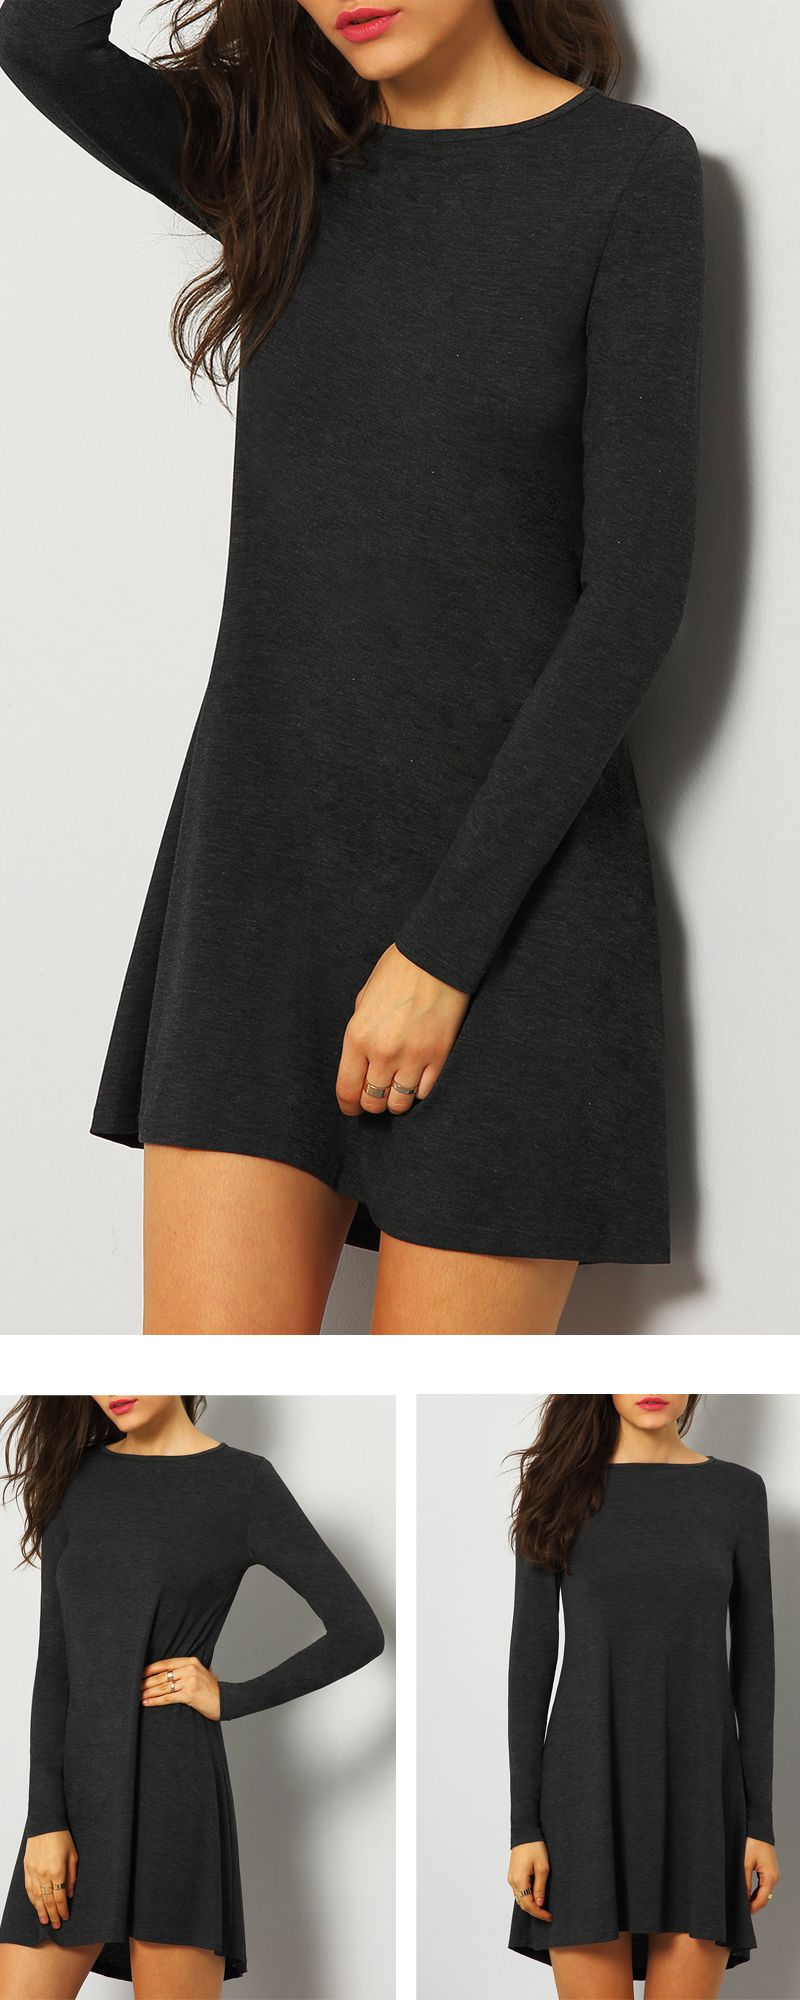 Minimalist and classic grey long sleeve simple casual dress